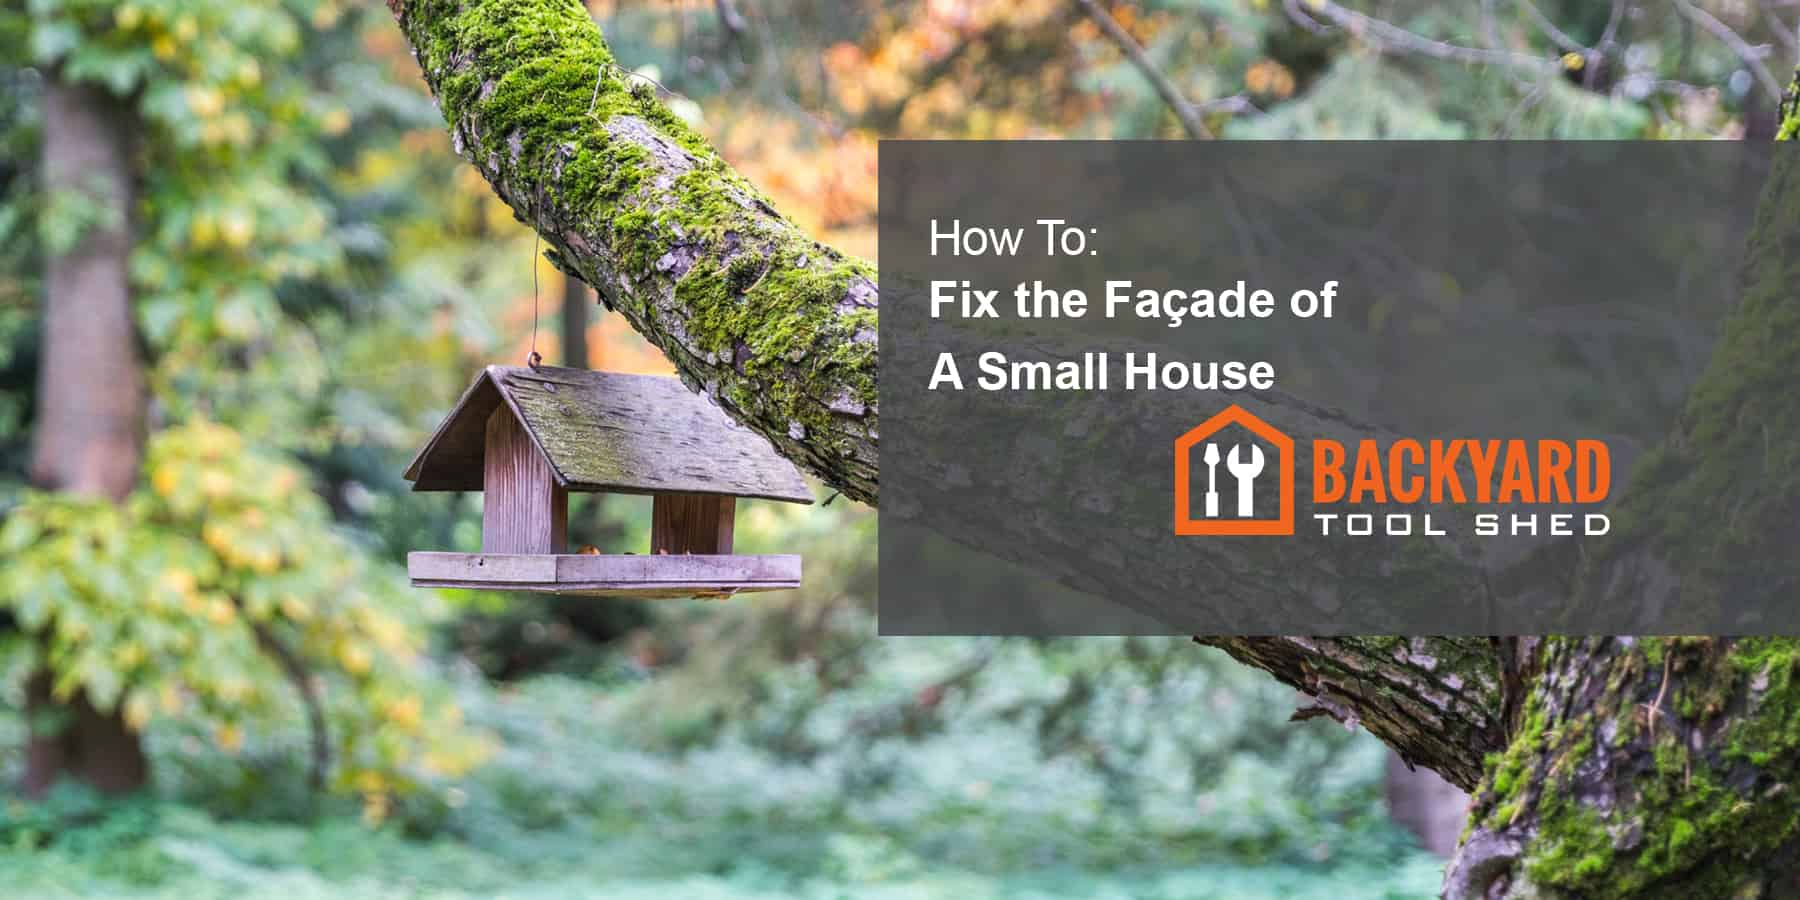 How to Fix the Façade of a Small House